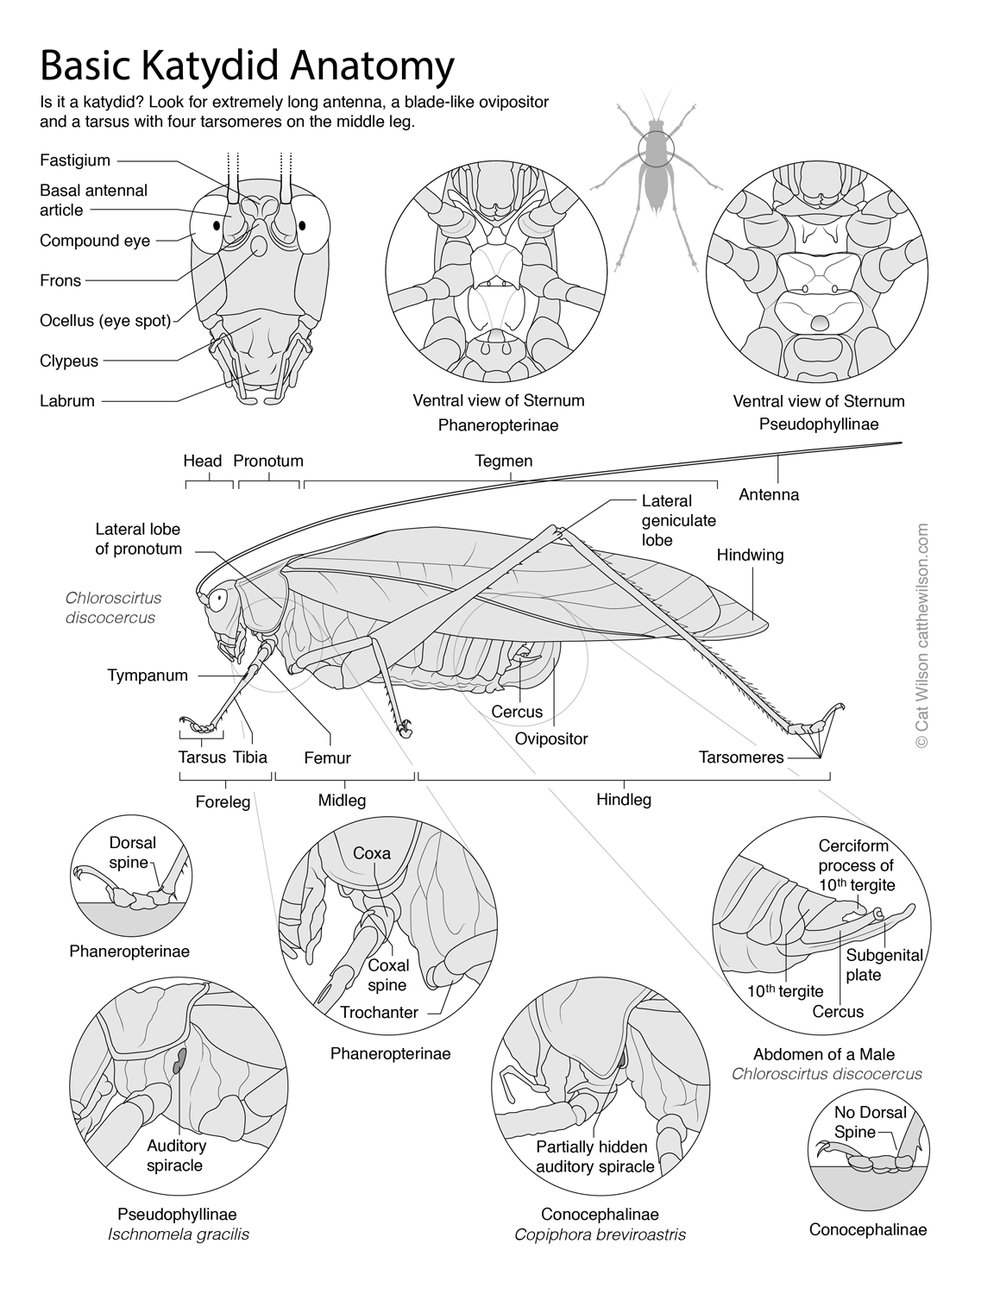 Guide to Barro Colorado Island Katydid Subfamilies   Created for Dr. Laurel Symes at Cornell, Dr. Hannah ter Hofstede at Darthmouth and the Darthmouth field course